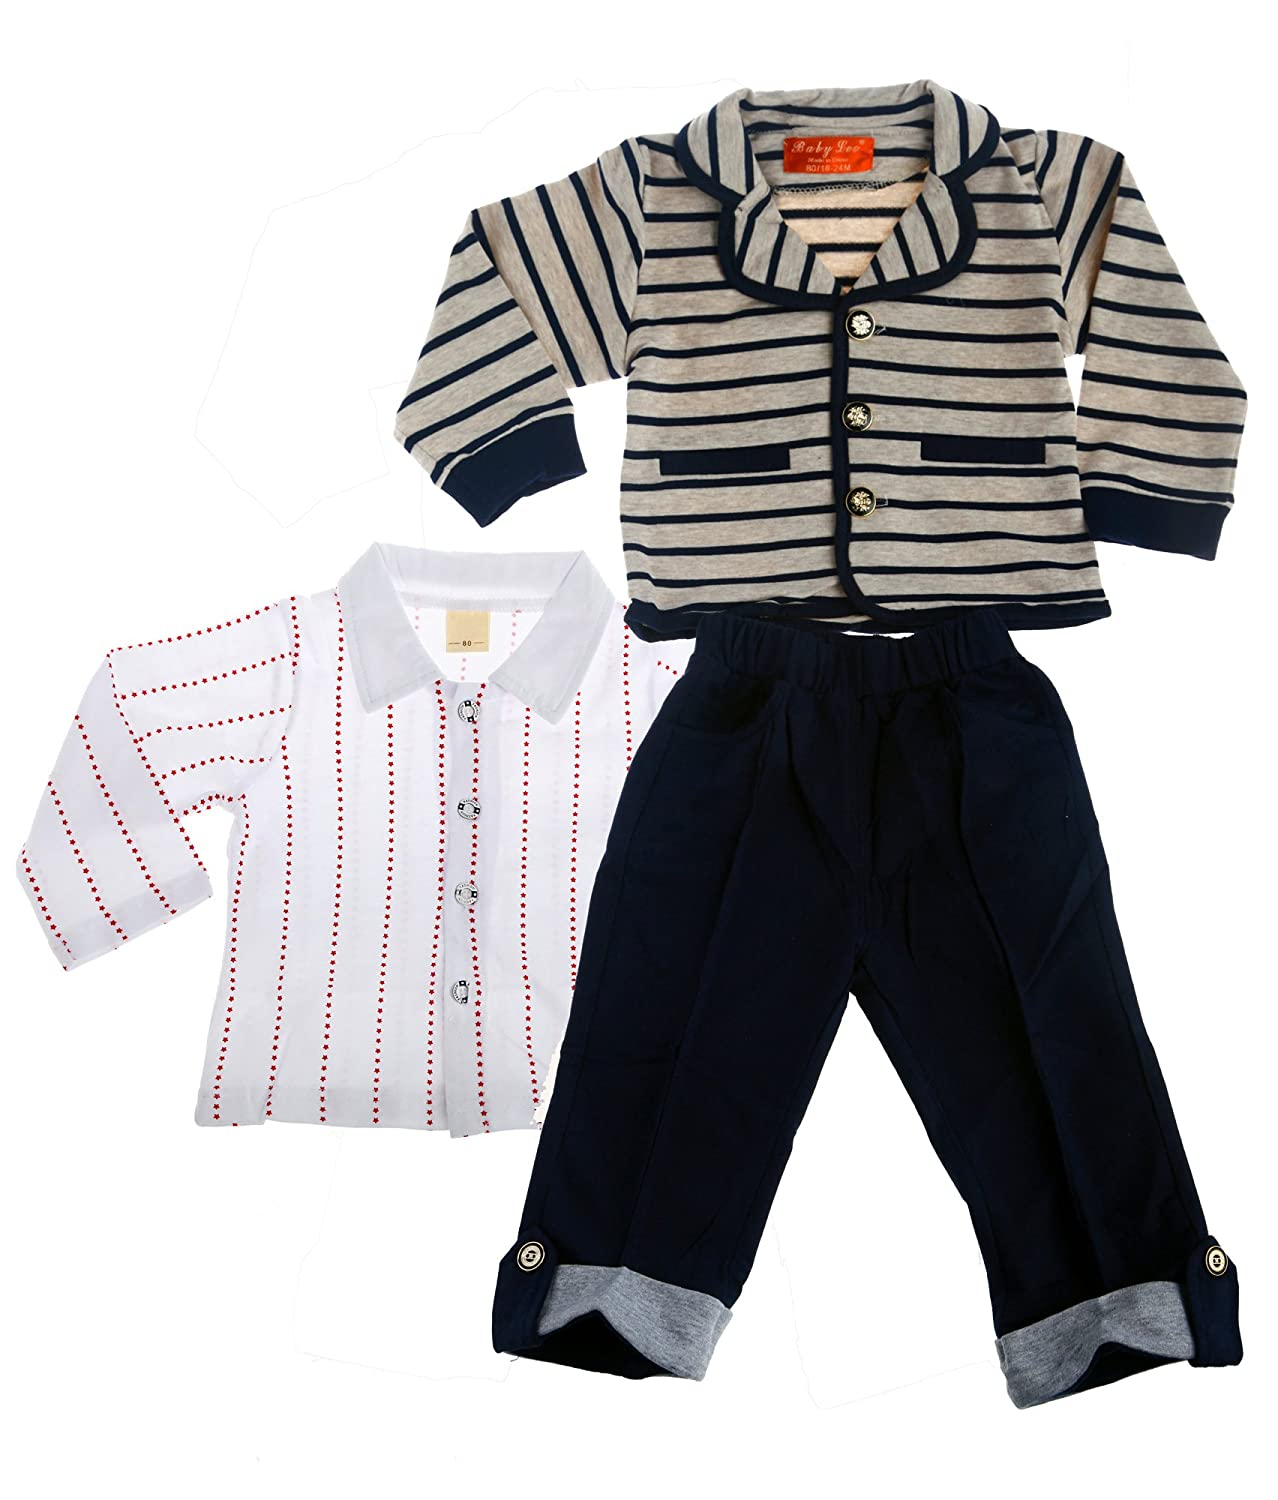 Baby Leonardo Little Boys 3pcs Long Sleeve Clothing Sets Outfit